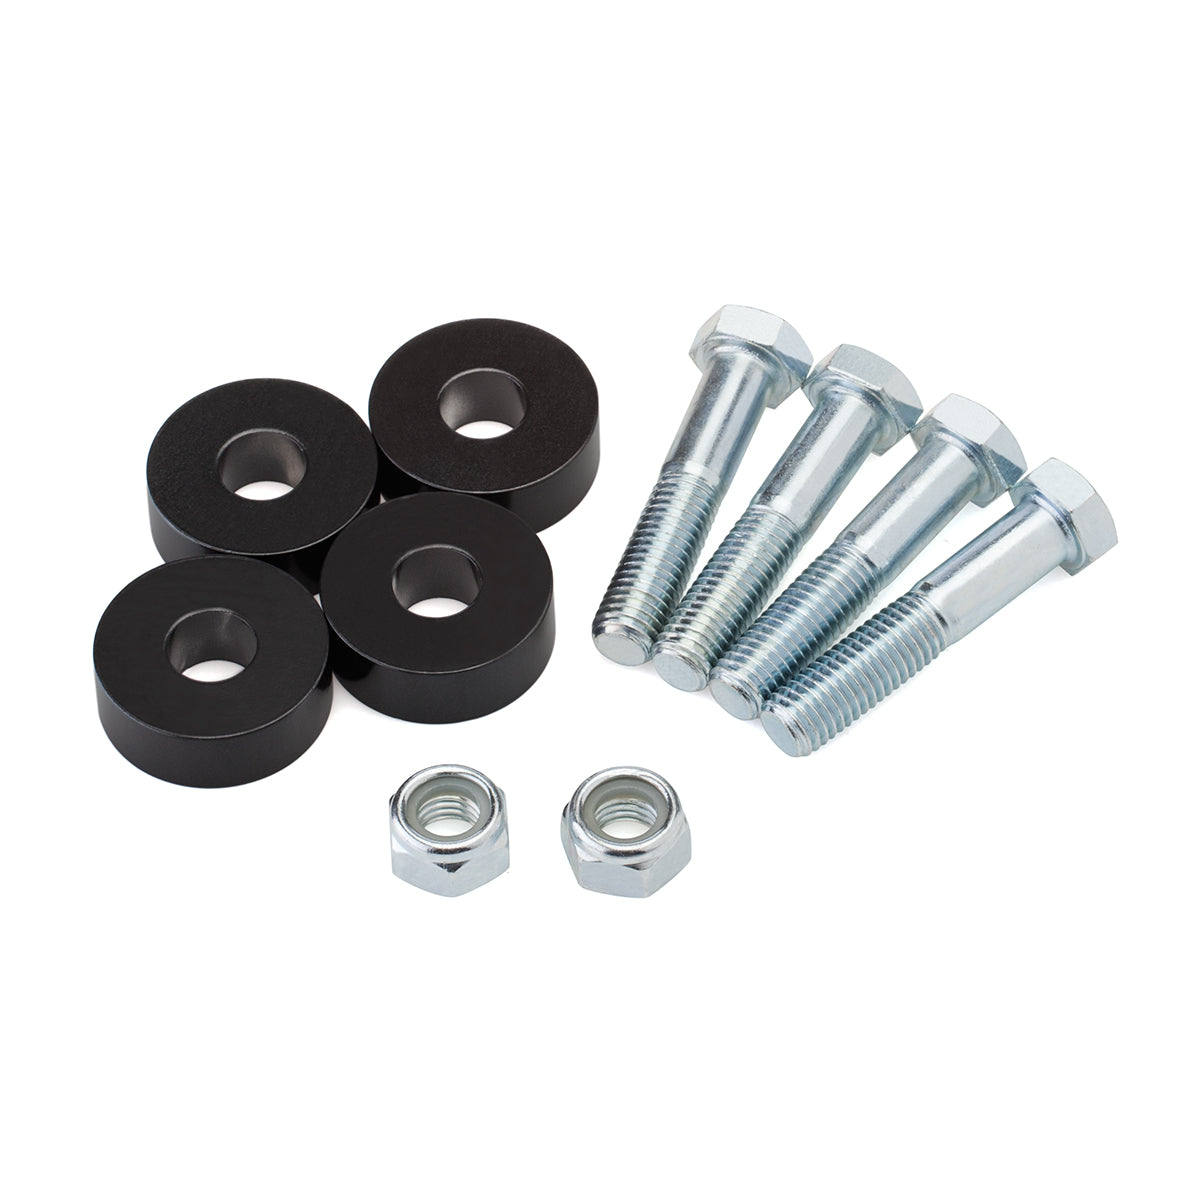 2007-2019 GMC Sierra 1500 Full Lift Kit with Bumps Stops and Differential Drop Kit